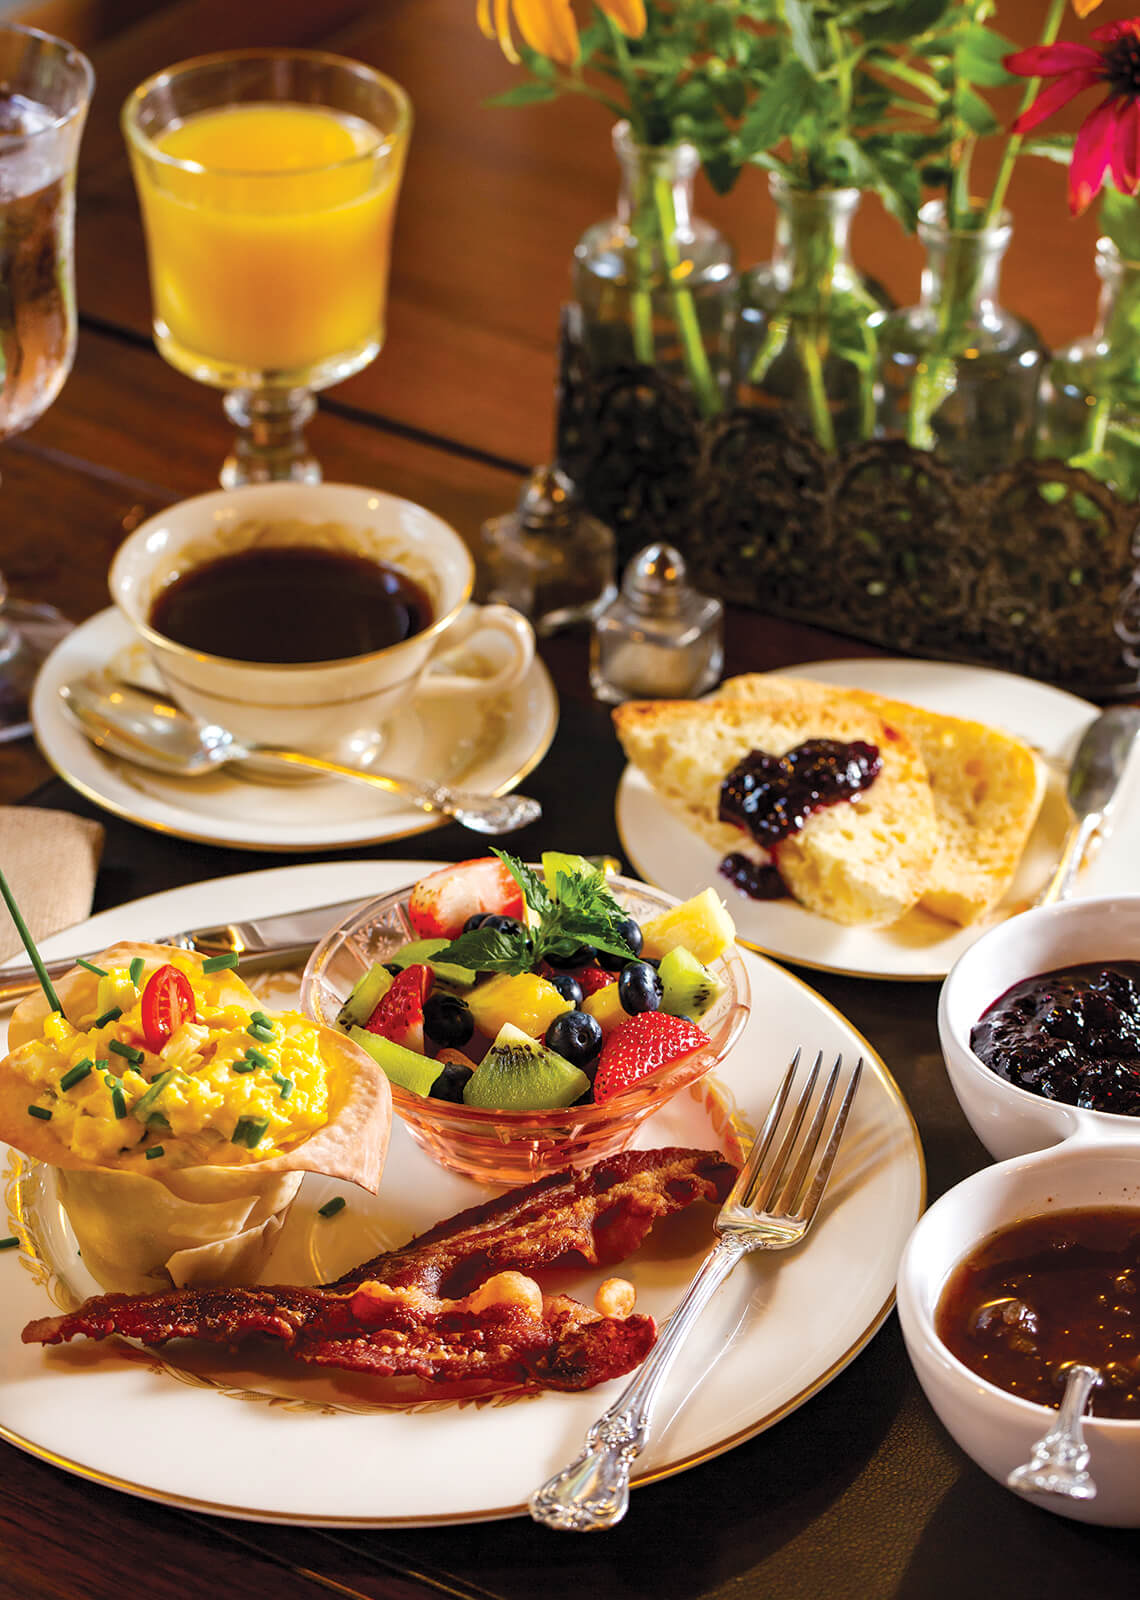 An elaborate breakfast meal with eggs, bacon and fruit.